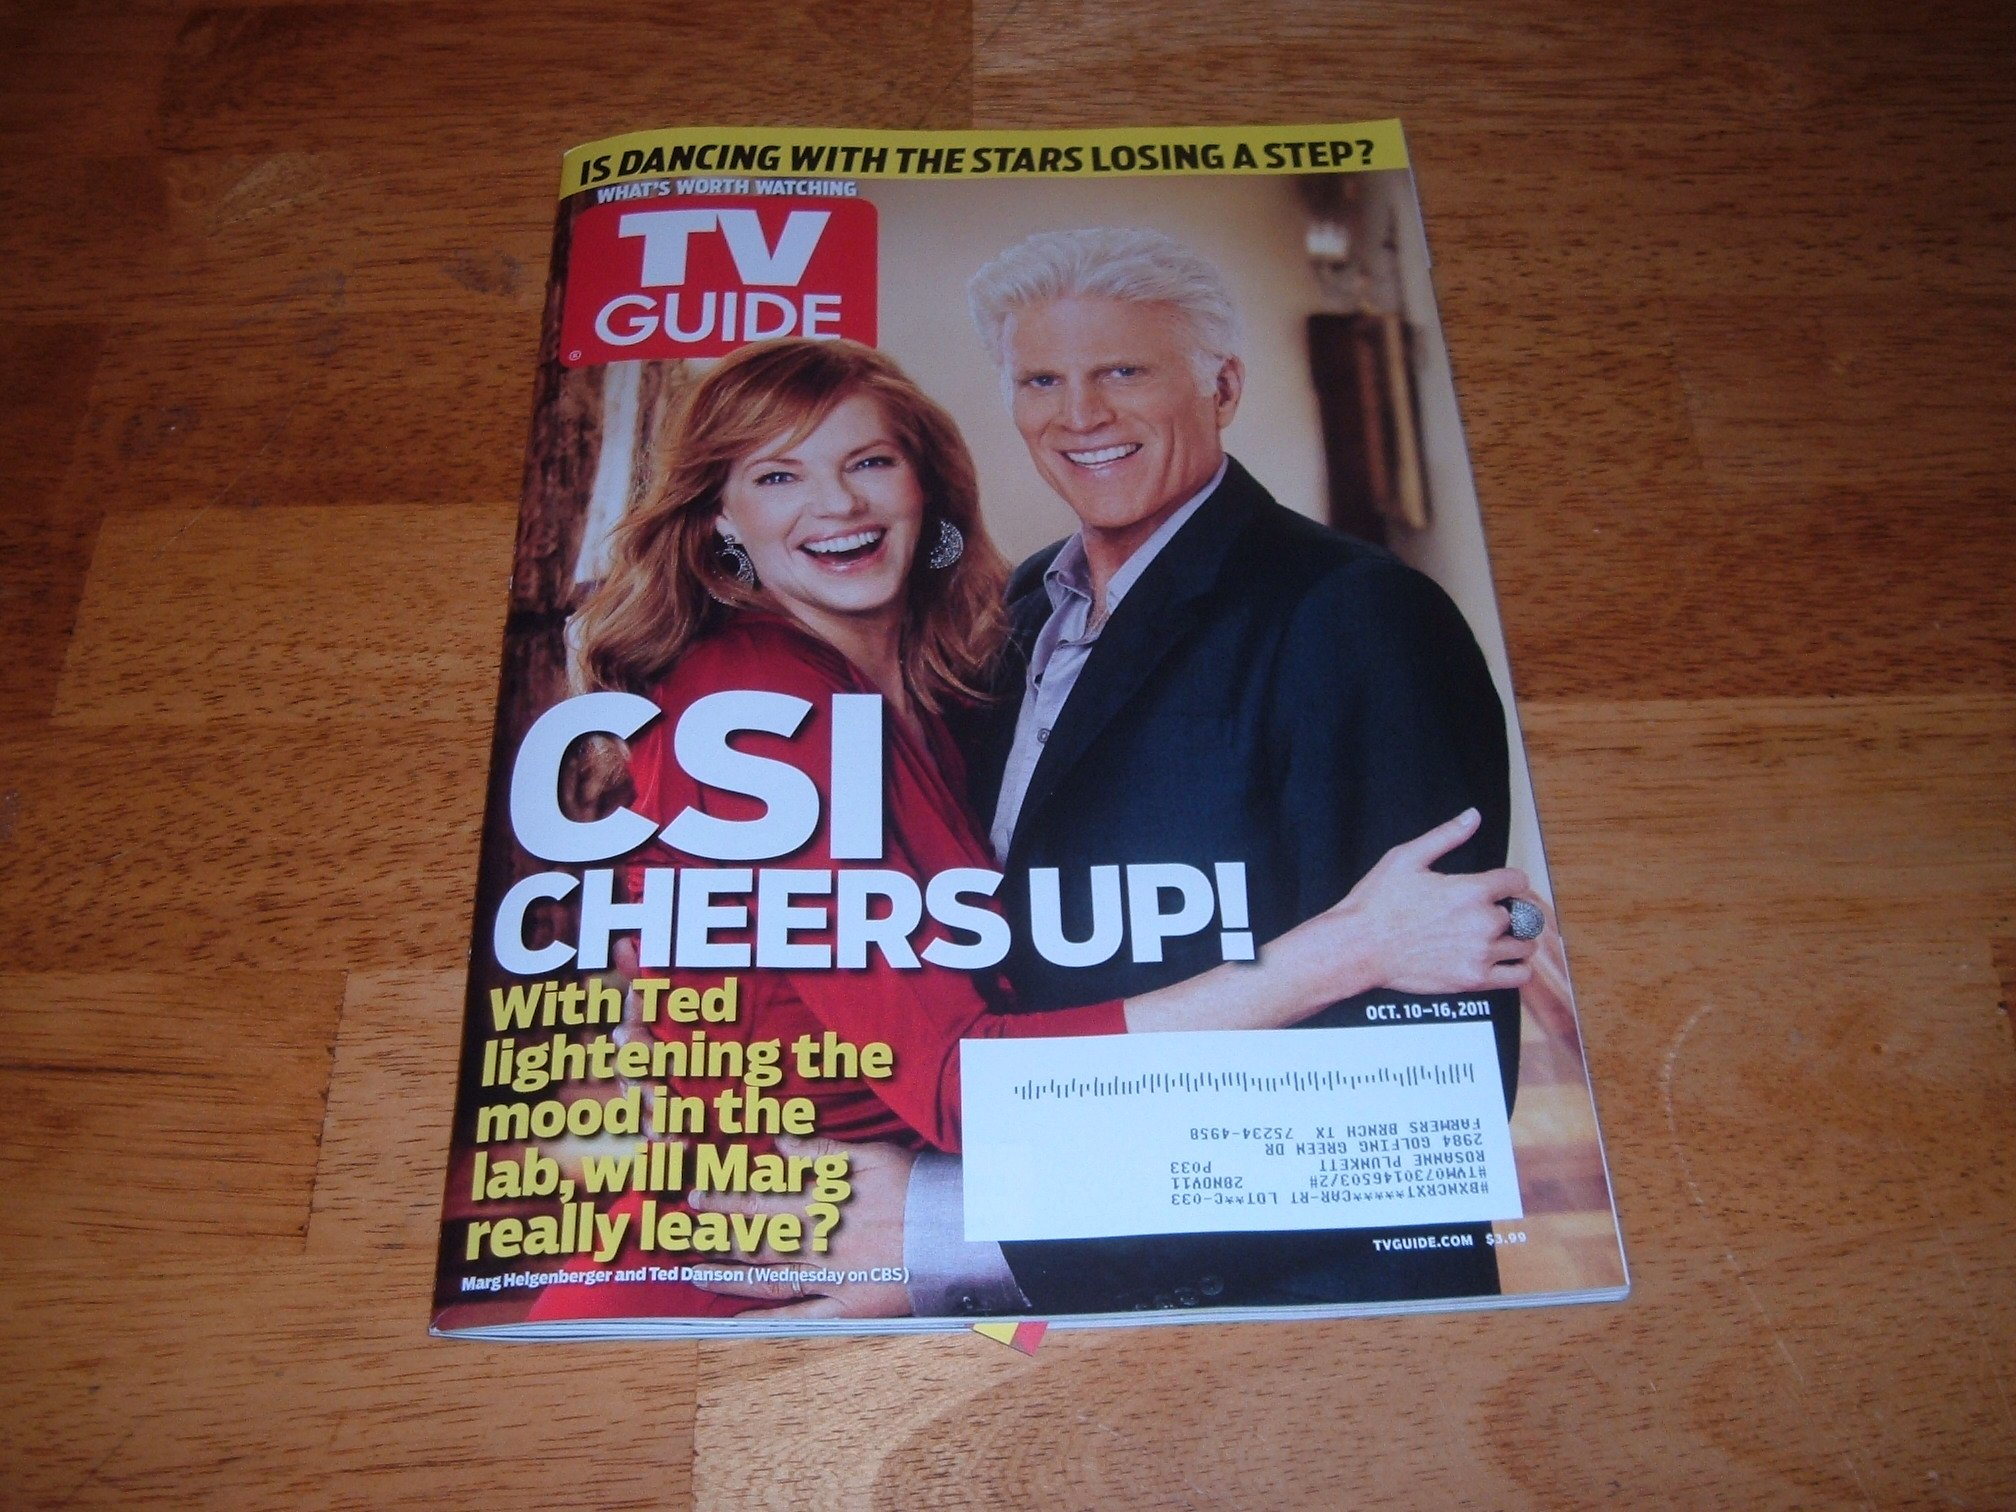 TV Guide magazine, October 10-16, 2011-Ted Danson Joins CSI-CSI Cheers Up! pdf